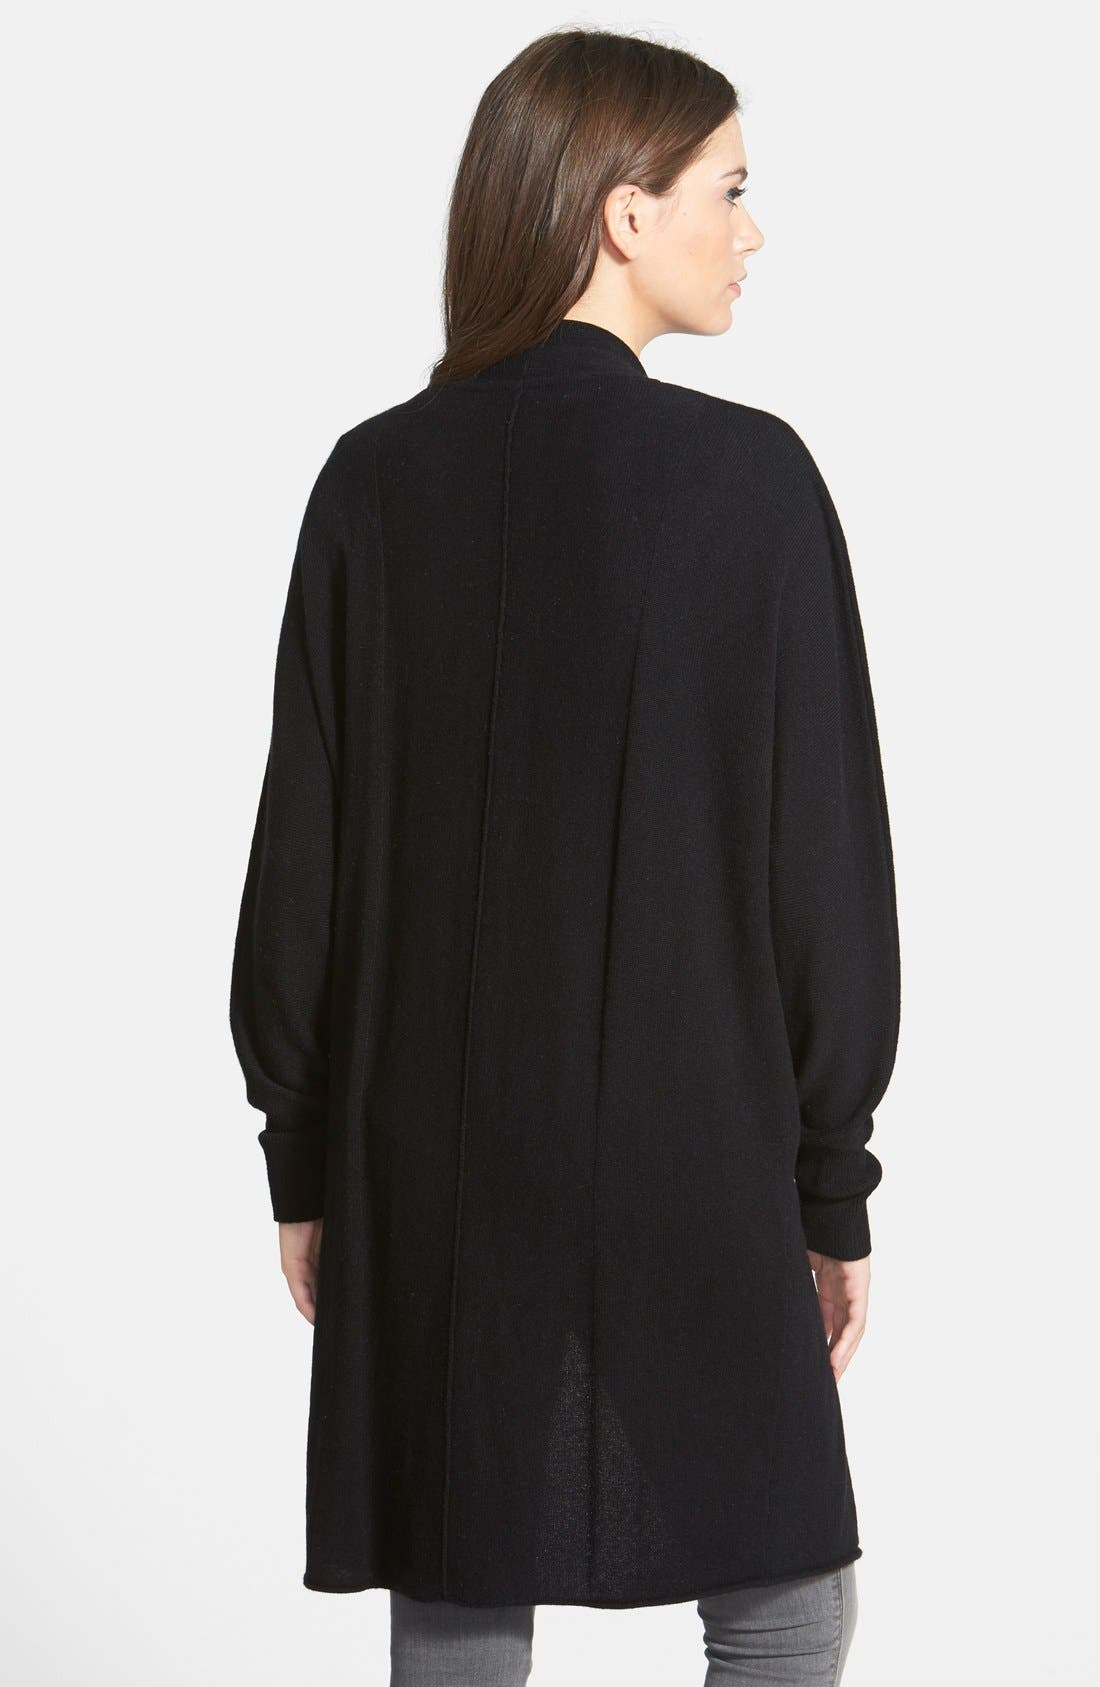 NORDSTROM COLLECTION,                             Dolman Sleeve Long Cashmere Cardigan,                             Alternate thumbnail 2, color,                             001